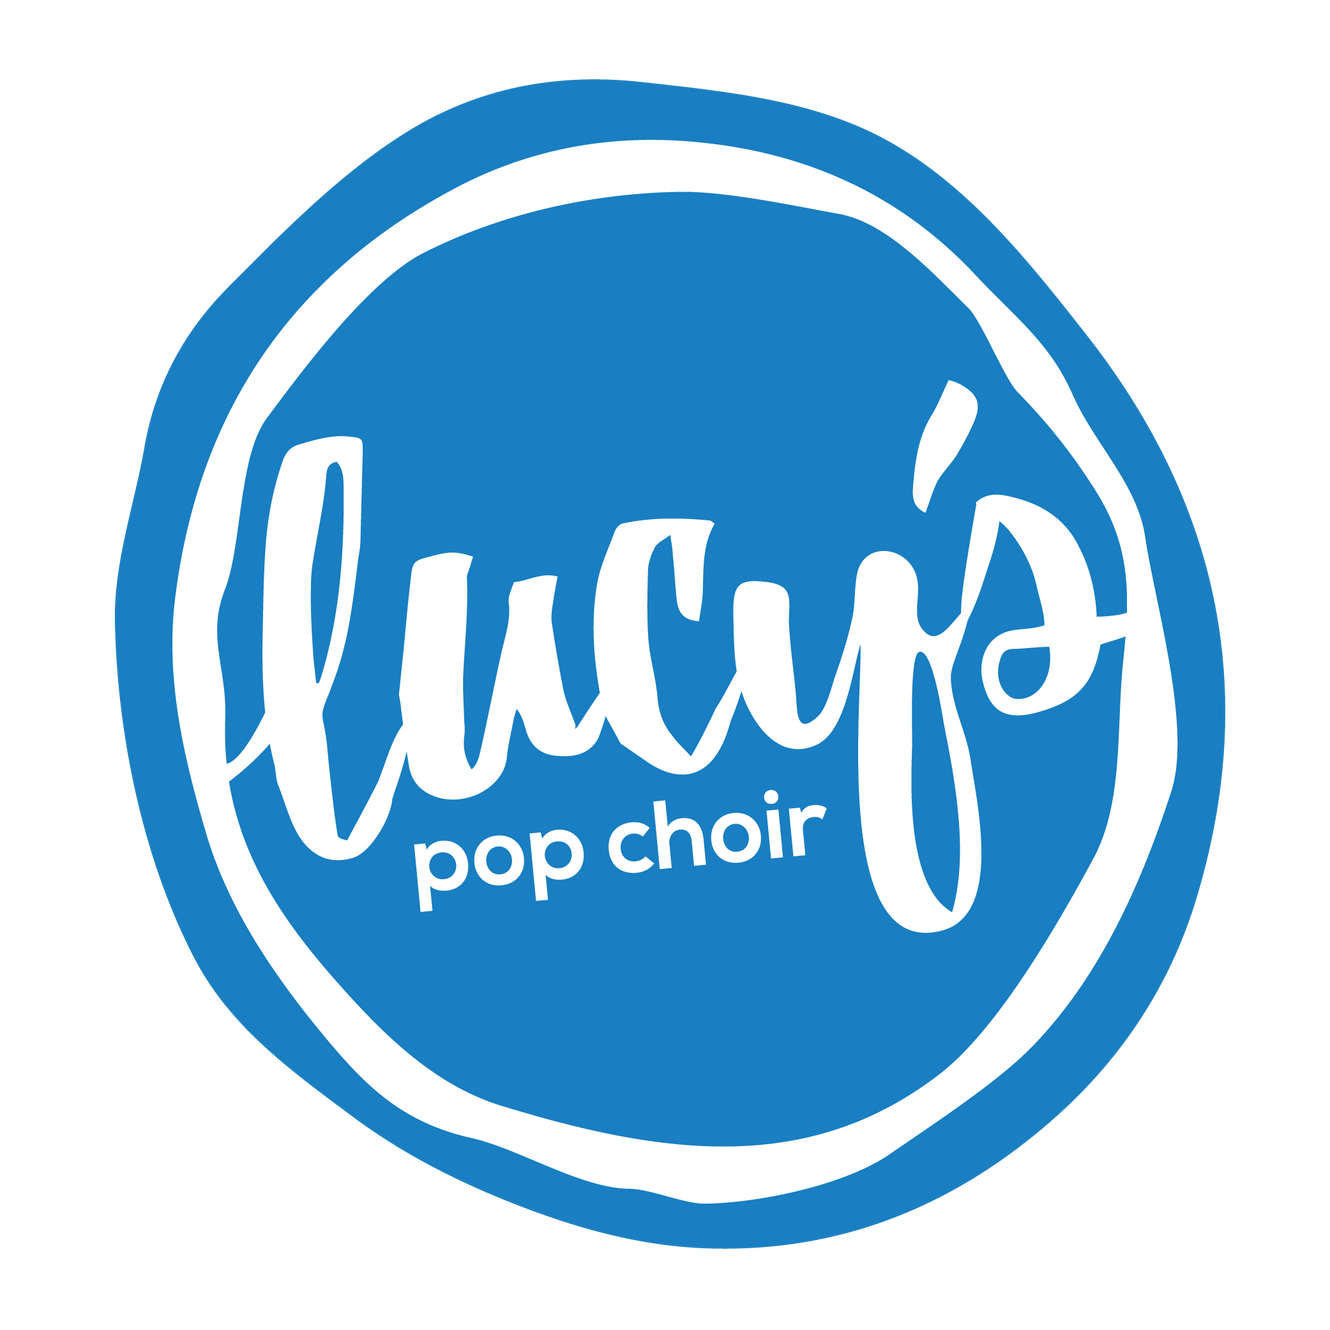 Lucy's Pop Choir - About us